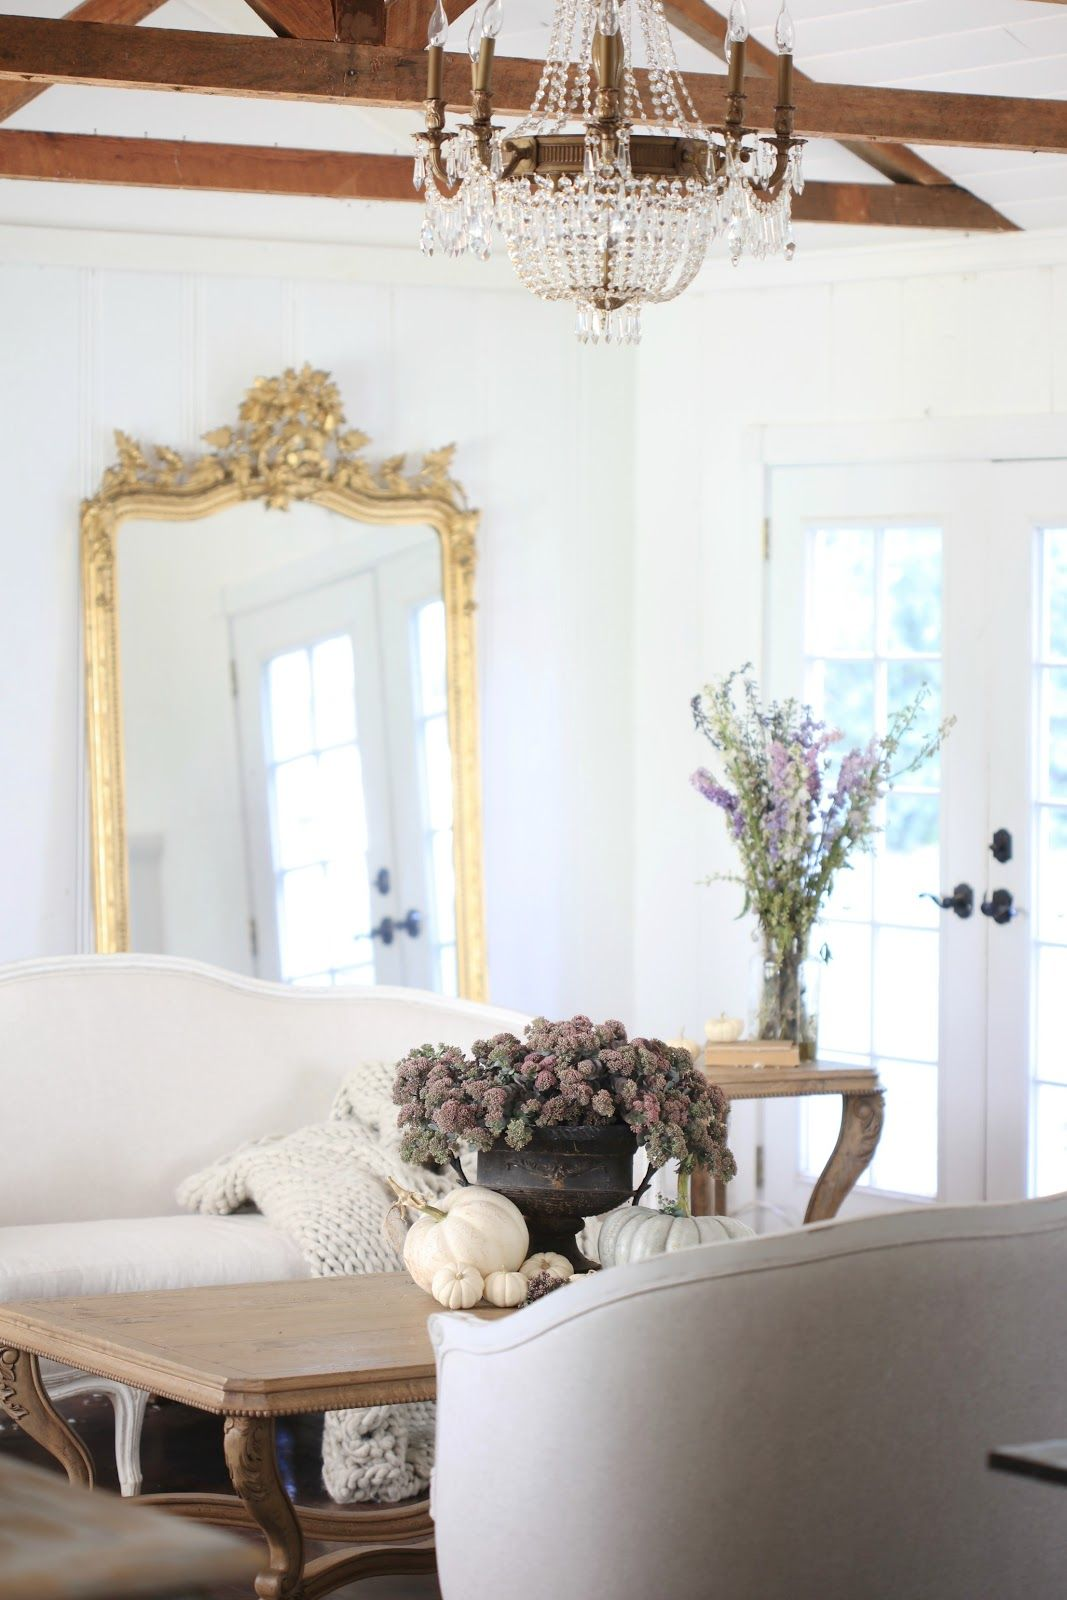 Inspired and romantic living, entertaining, traveling and decorating ...